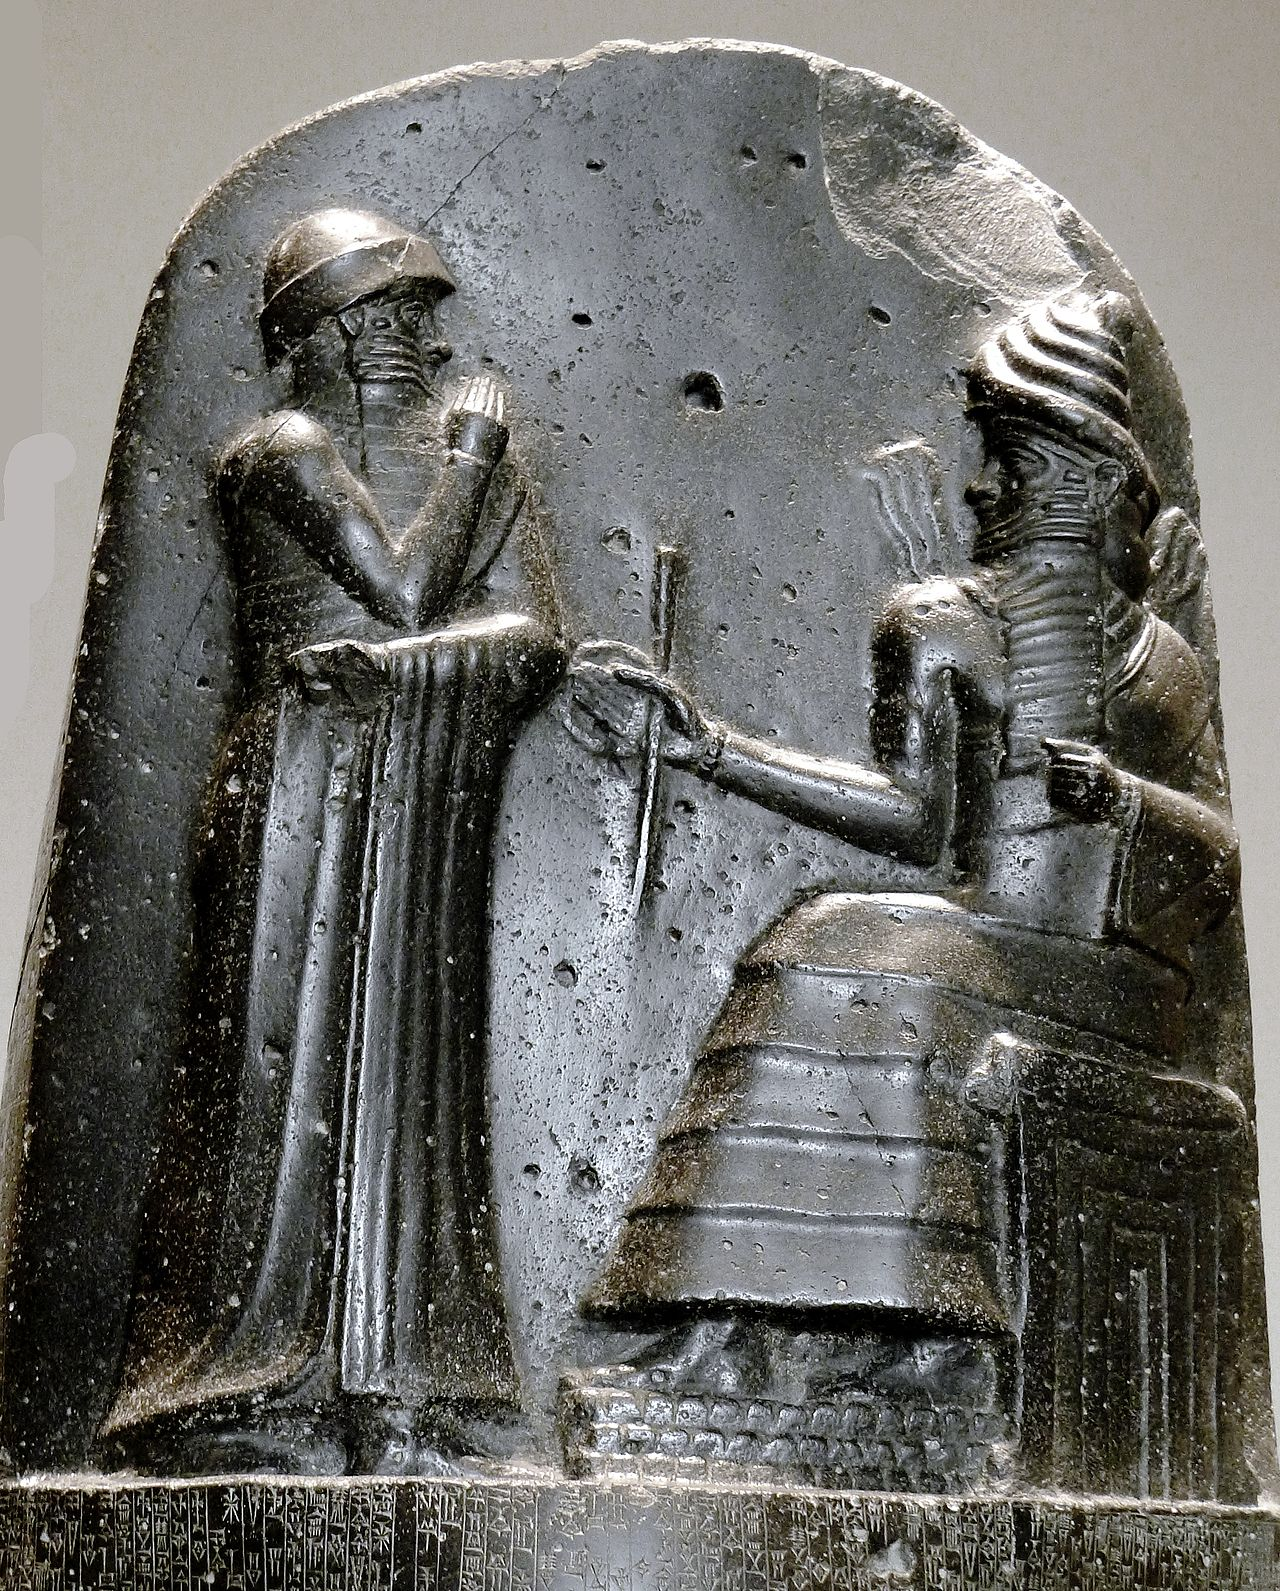 Hammurabi, king of Babylon, enthroned